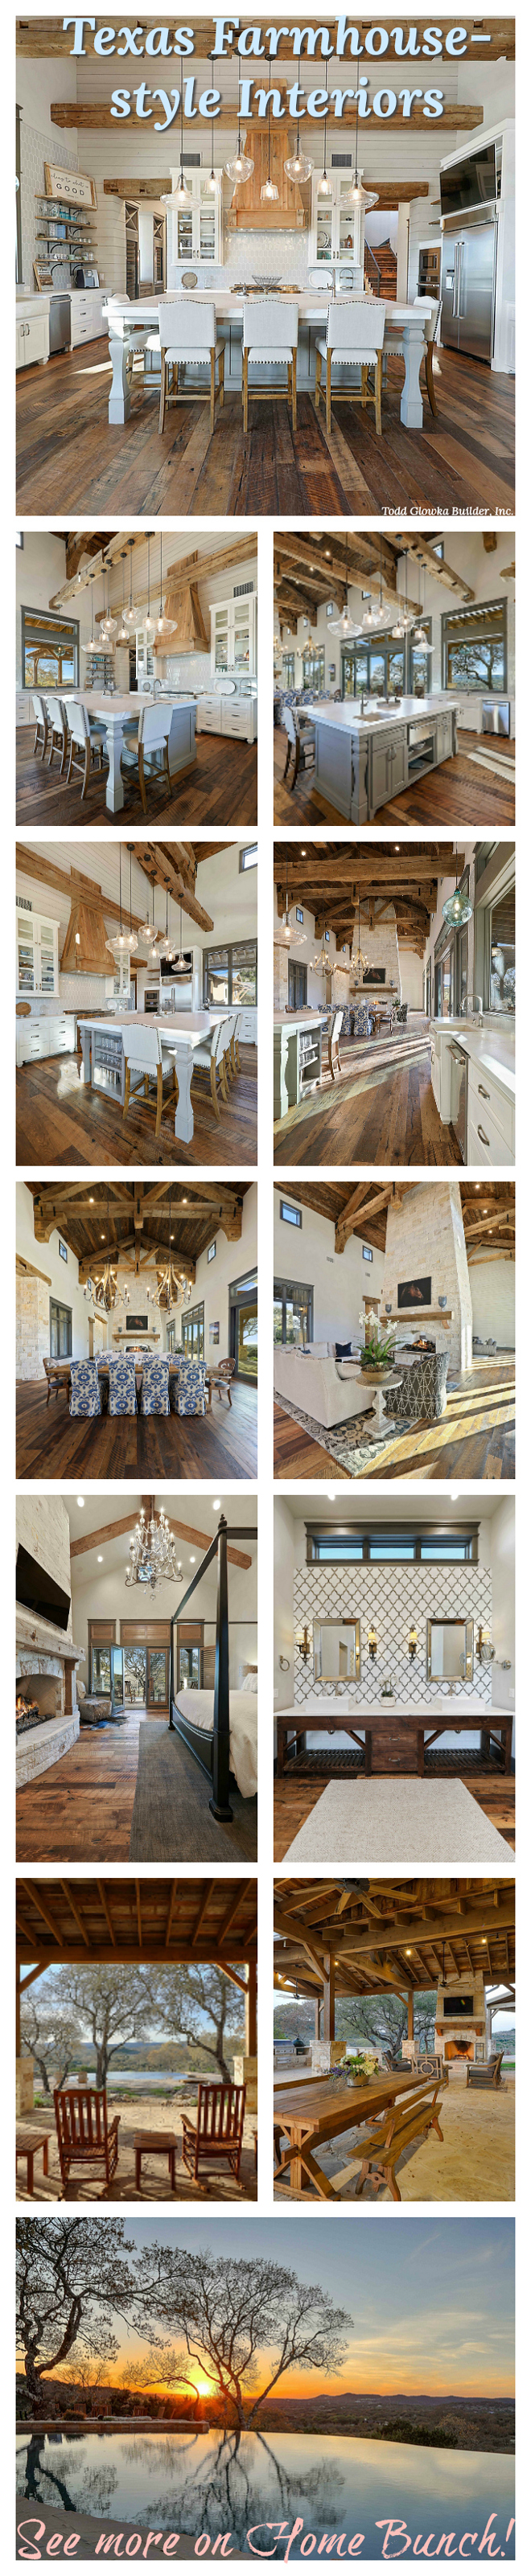 Texas Acreage Modern Farmhouse Home Bunch Interior Design Ideas